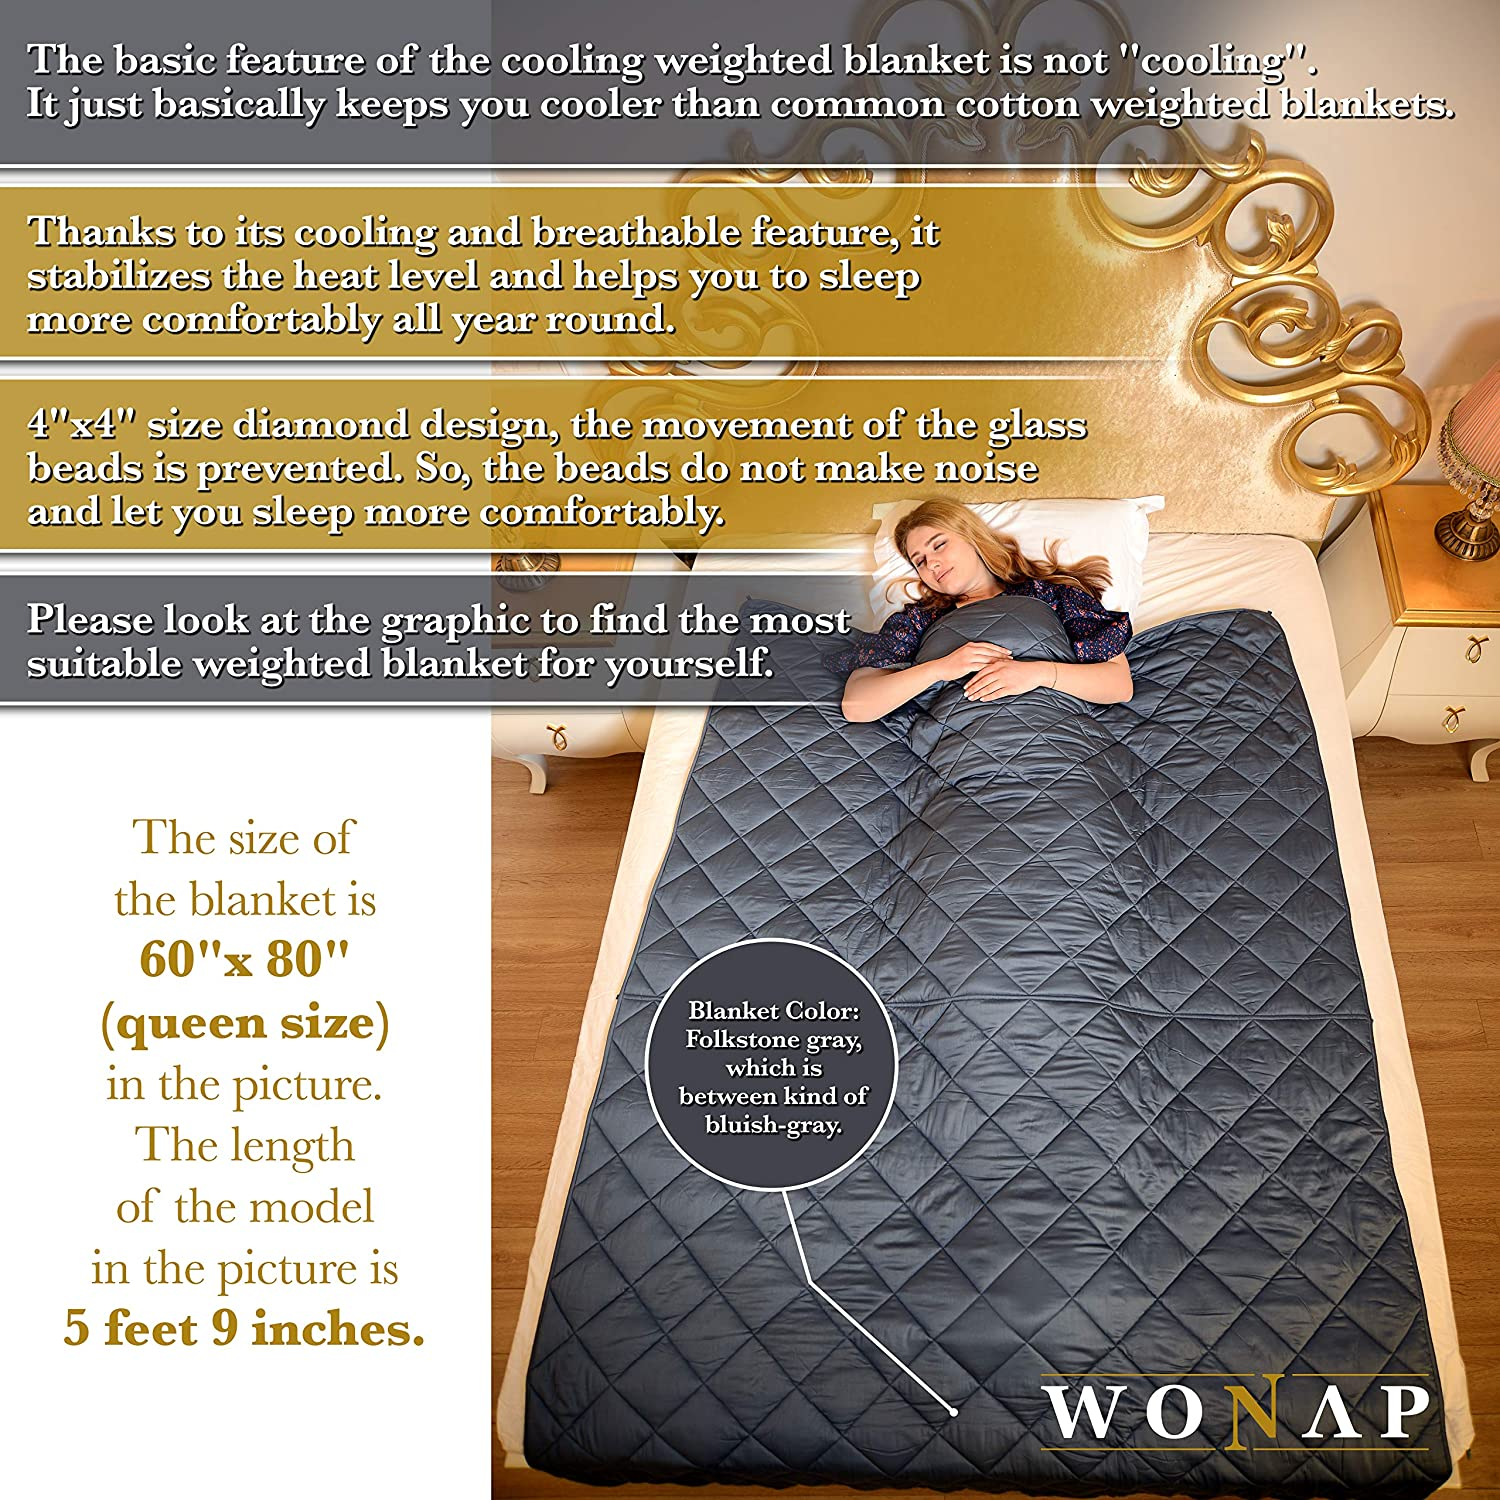 WONAP Cooling Weighted Blanket for Adult and Kids 20 lbs Heavy Blanket Folkstone Grey 60x80 Queen Size 100/% Natural Bamboo with Premium Glass Beads